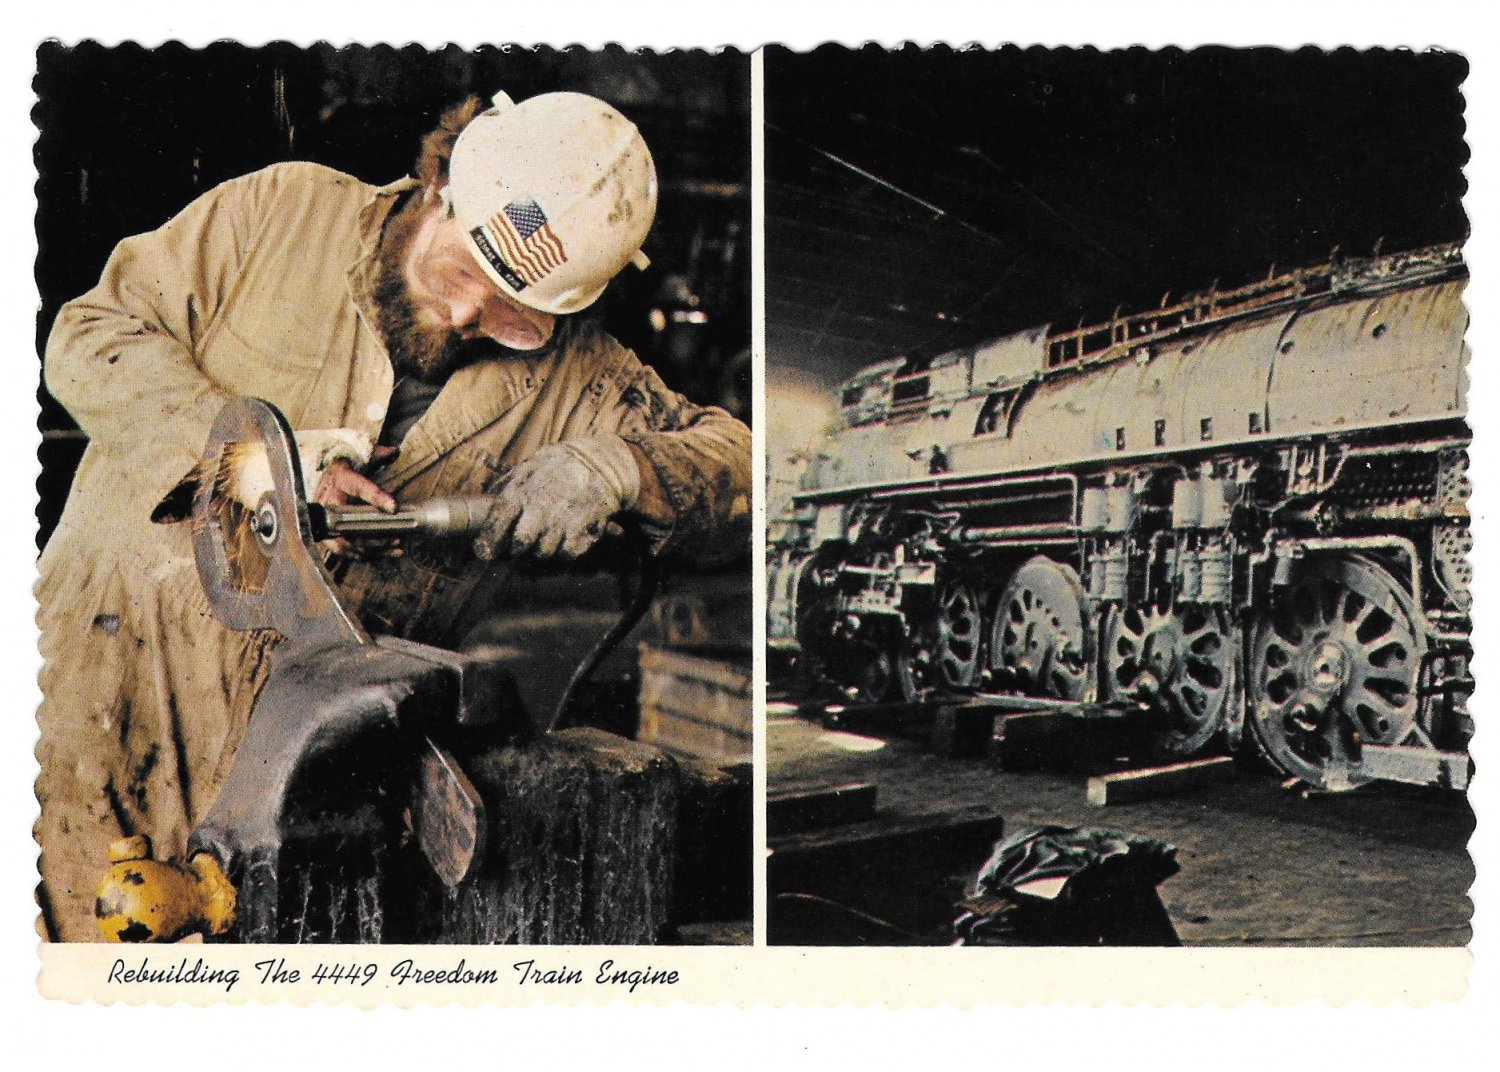 American Freedom Train 1976 Rebuilding Southern Pacific 4449 EngineLocomotive RR Postcard 4X6